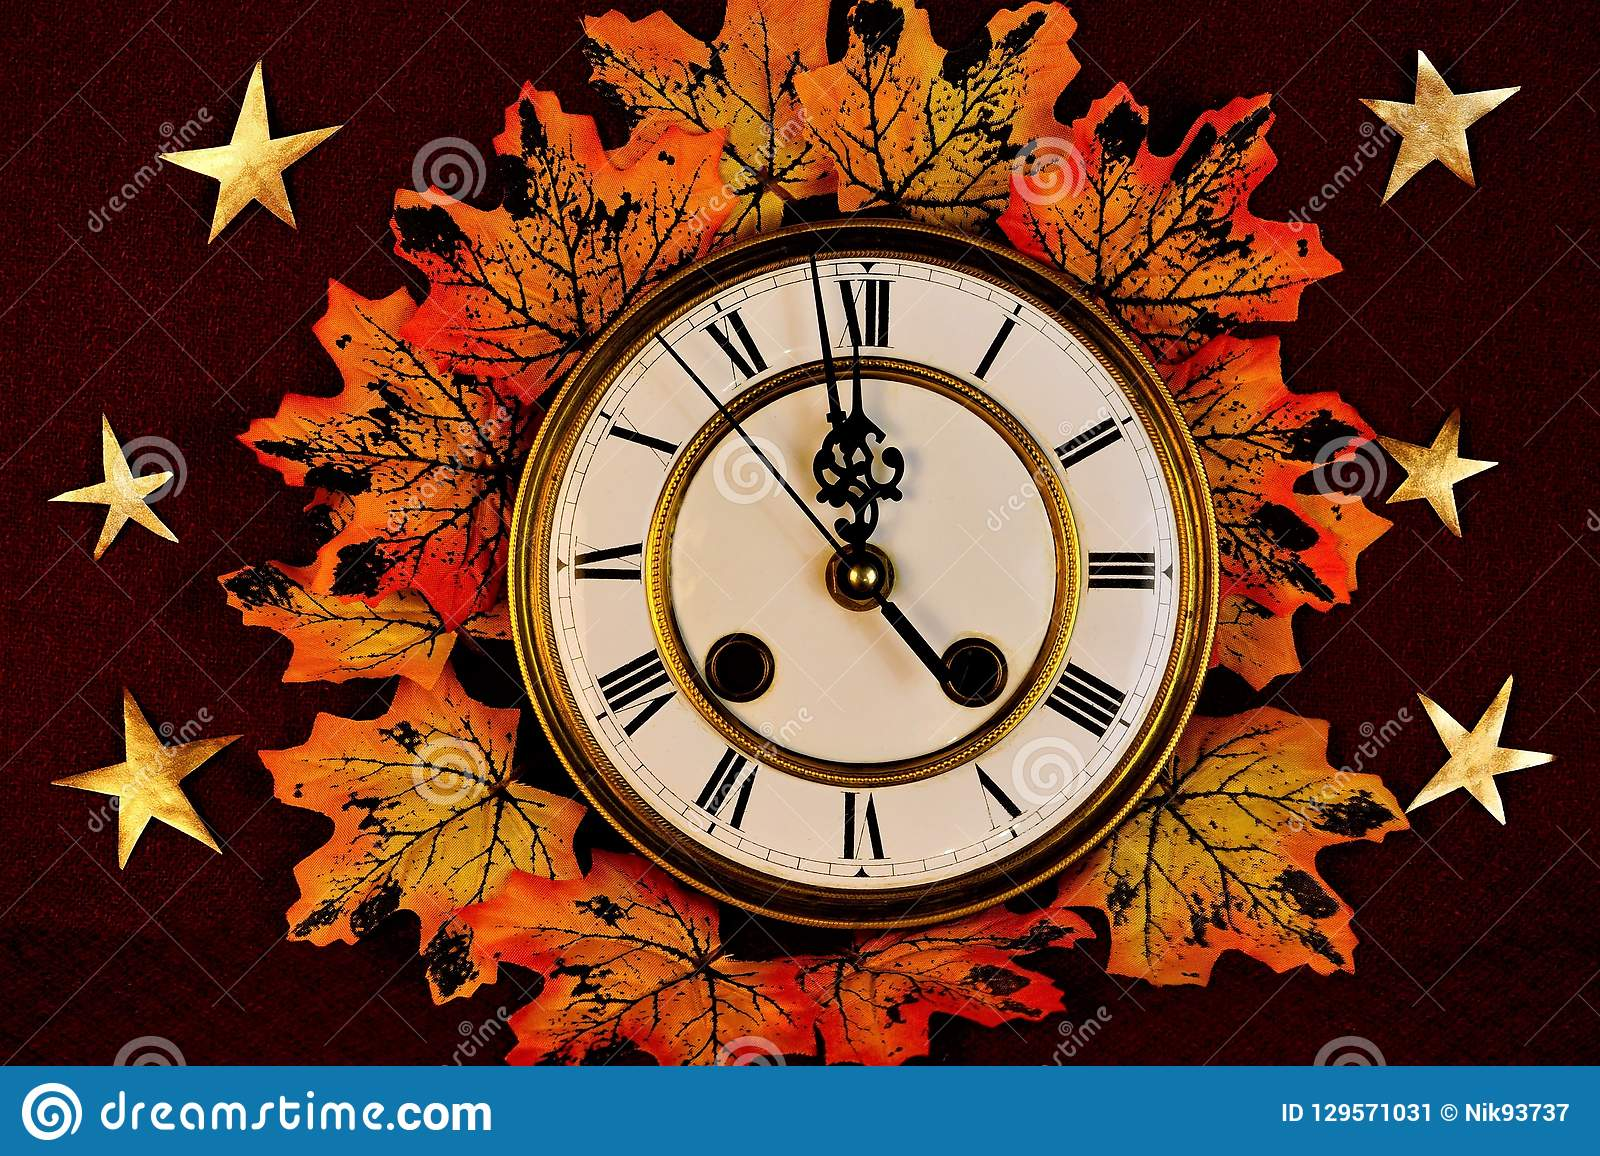 Autumn maple leaves, different colors of yellow, gold and red on the background of vintage watches,